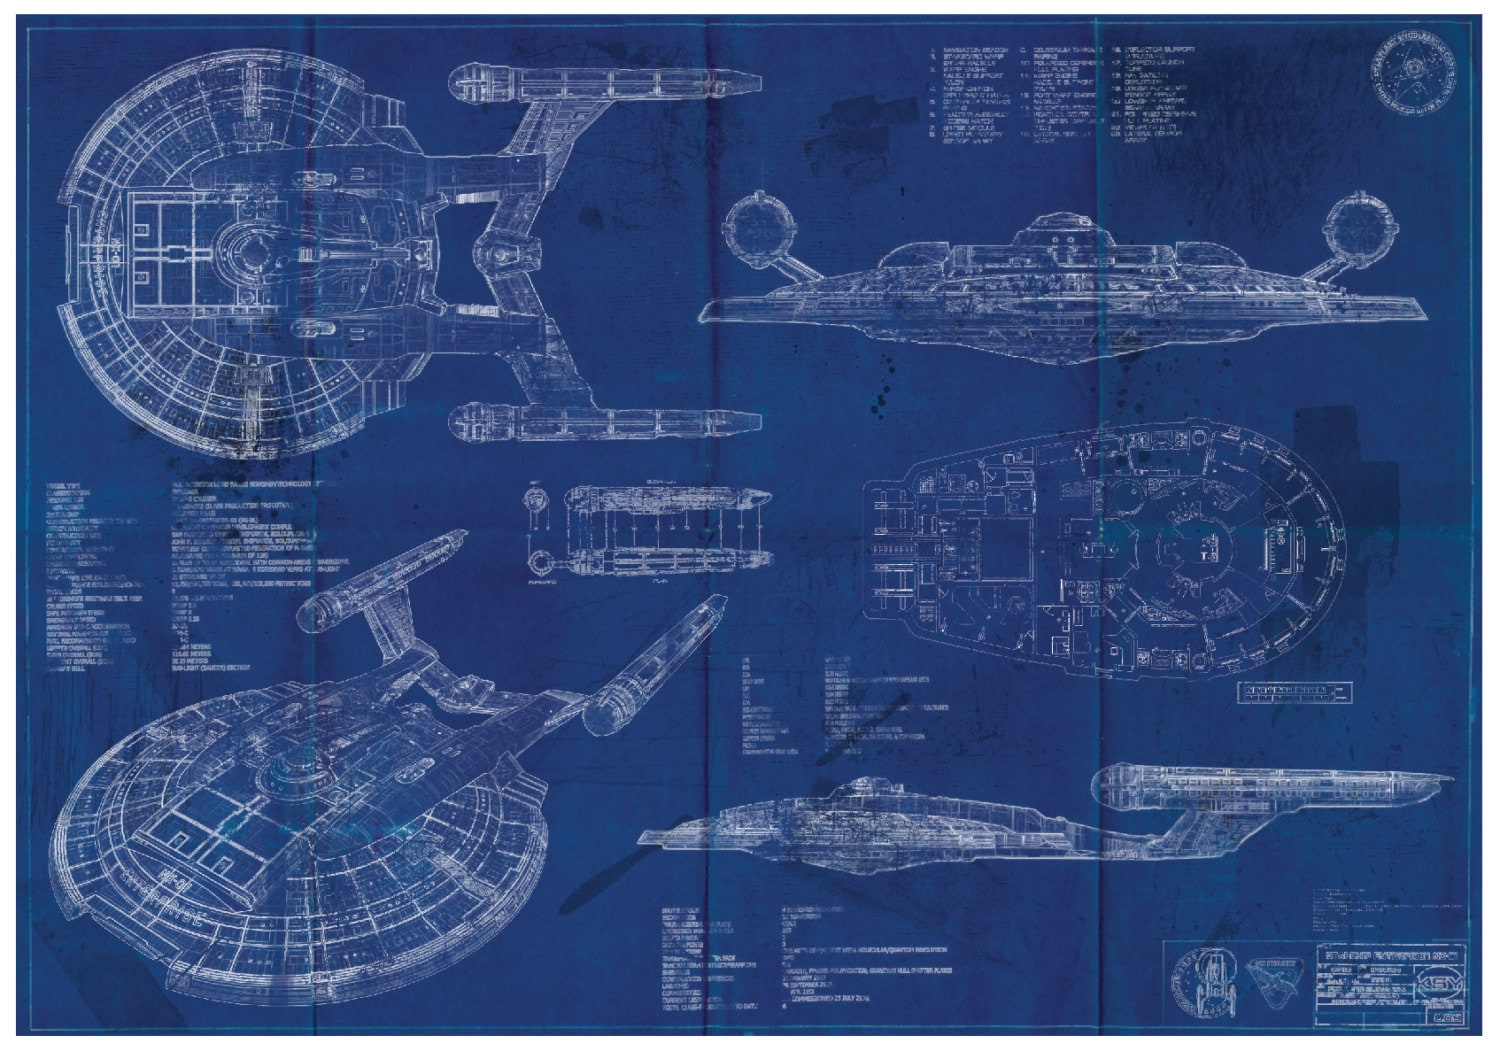 Star trek enterprise nx 01 blueprint art print a2 420mm594 zoom malvernweather Image collections